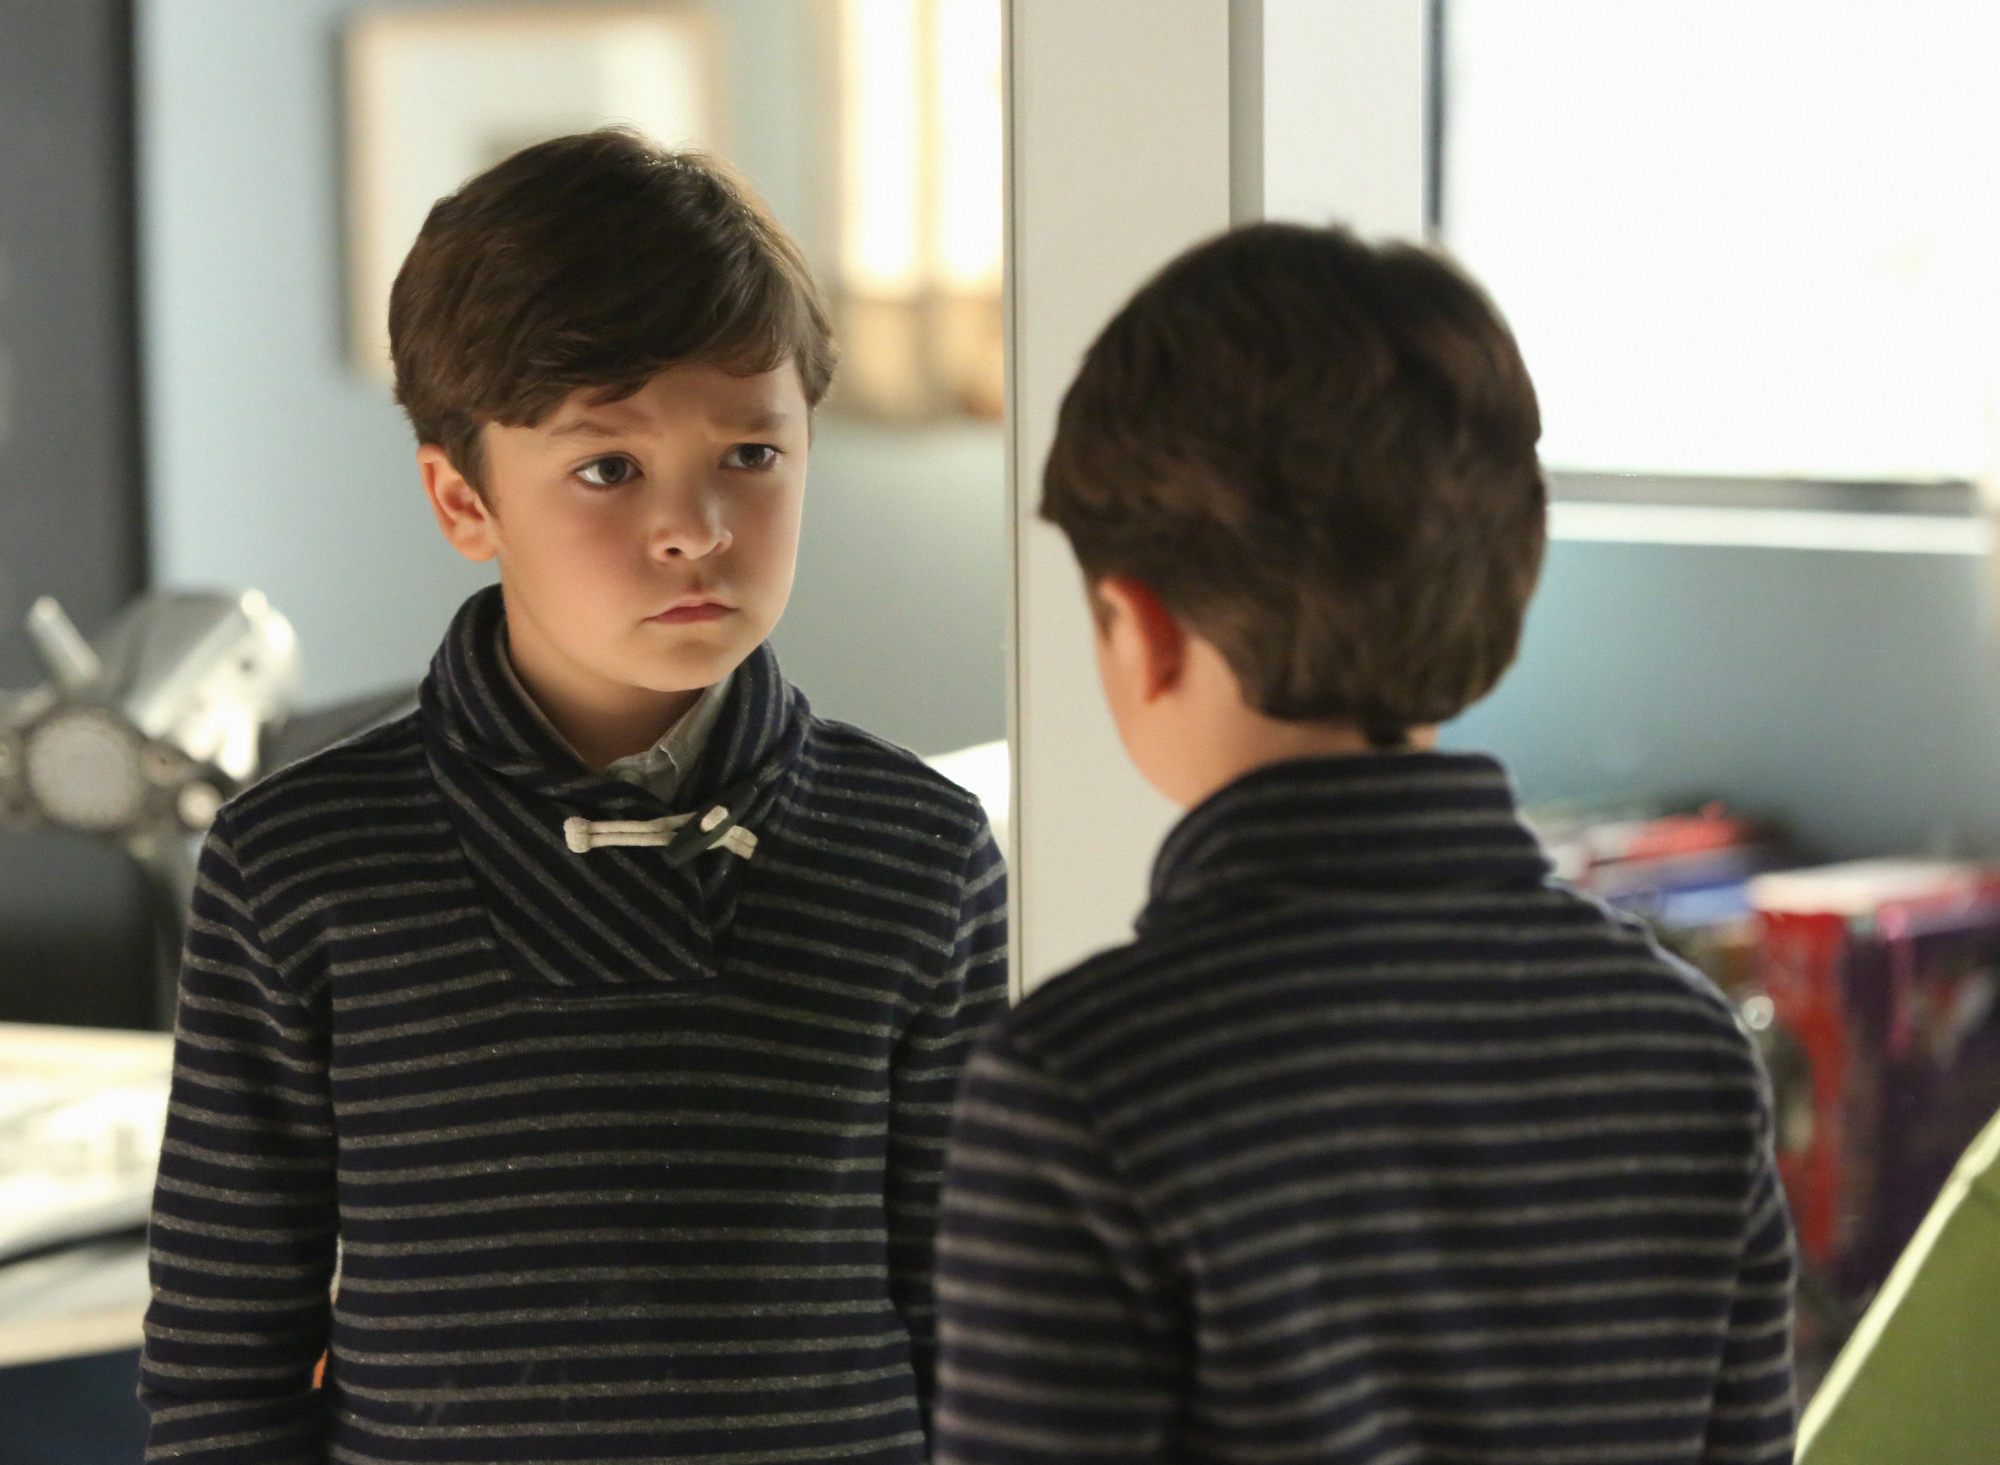 Pierce Gagnon in Extant - First Look